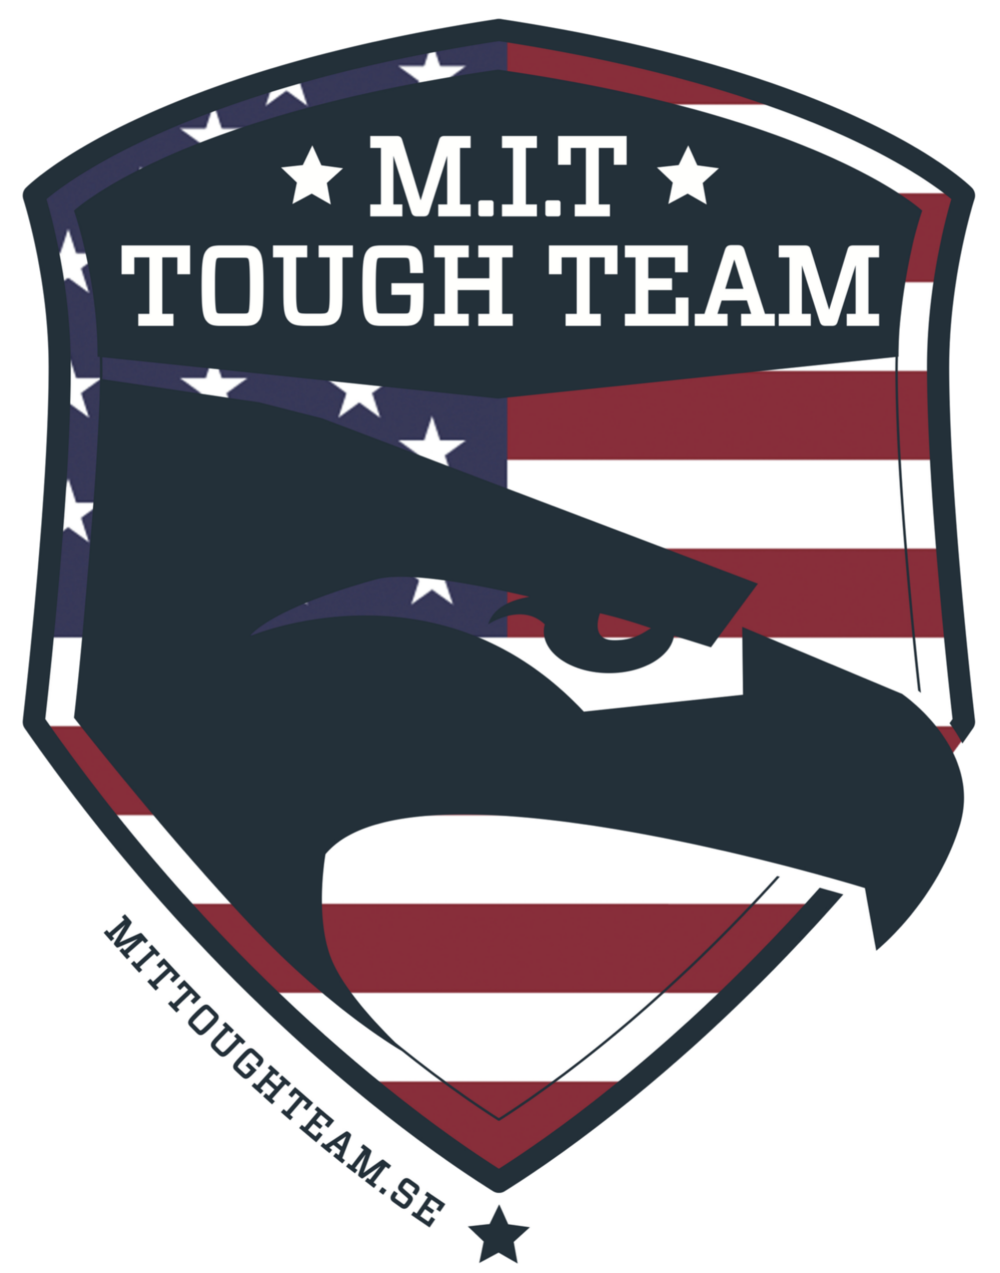 Join MIT USA